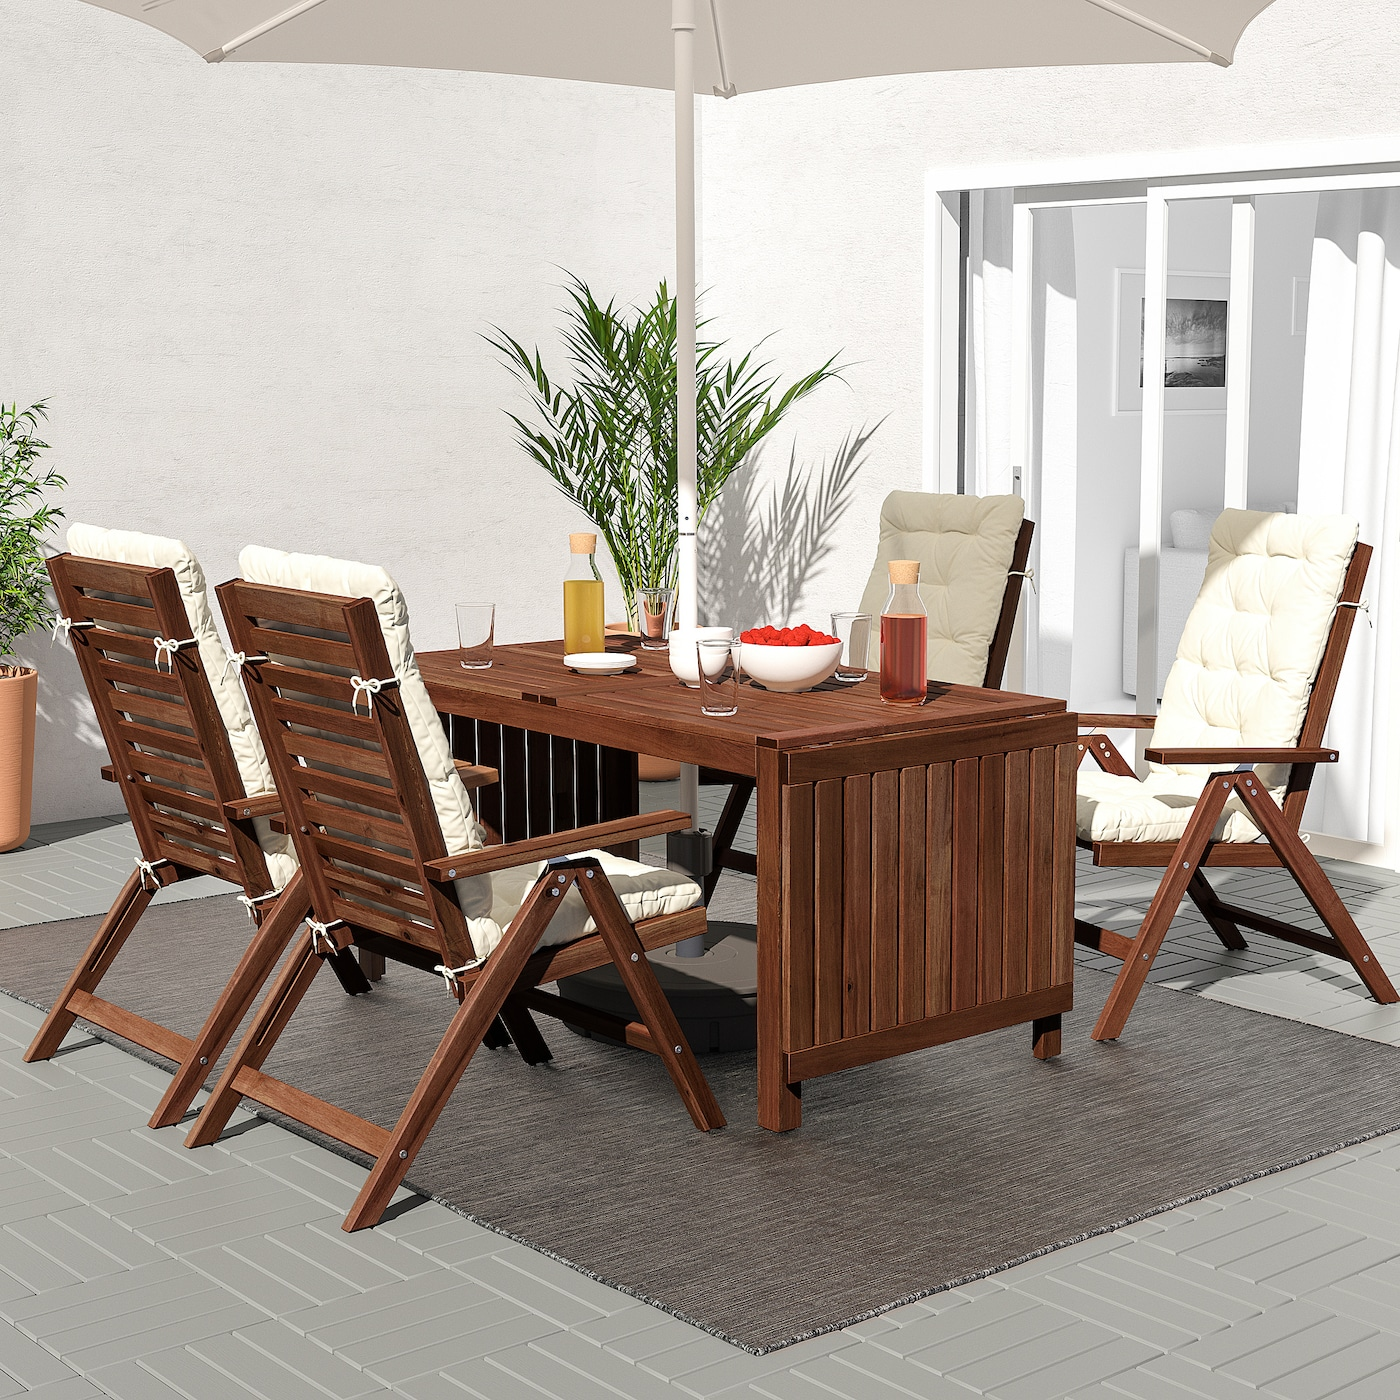 Fabulous Reclining Chair Outdoor Applaro Brown Foldable Brown Stained Brown Machost Co Dining Chair Design Ideas Machostcouk